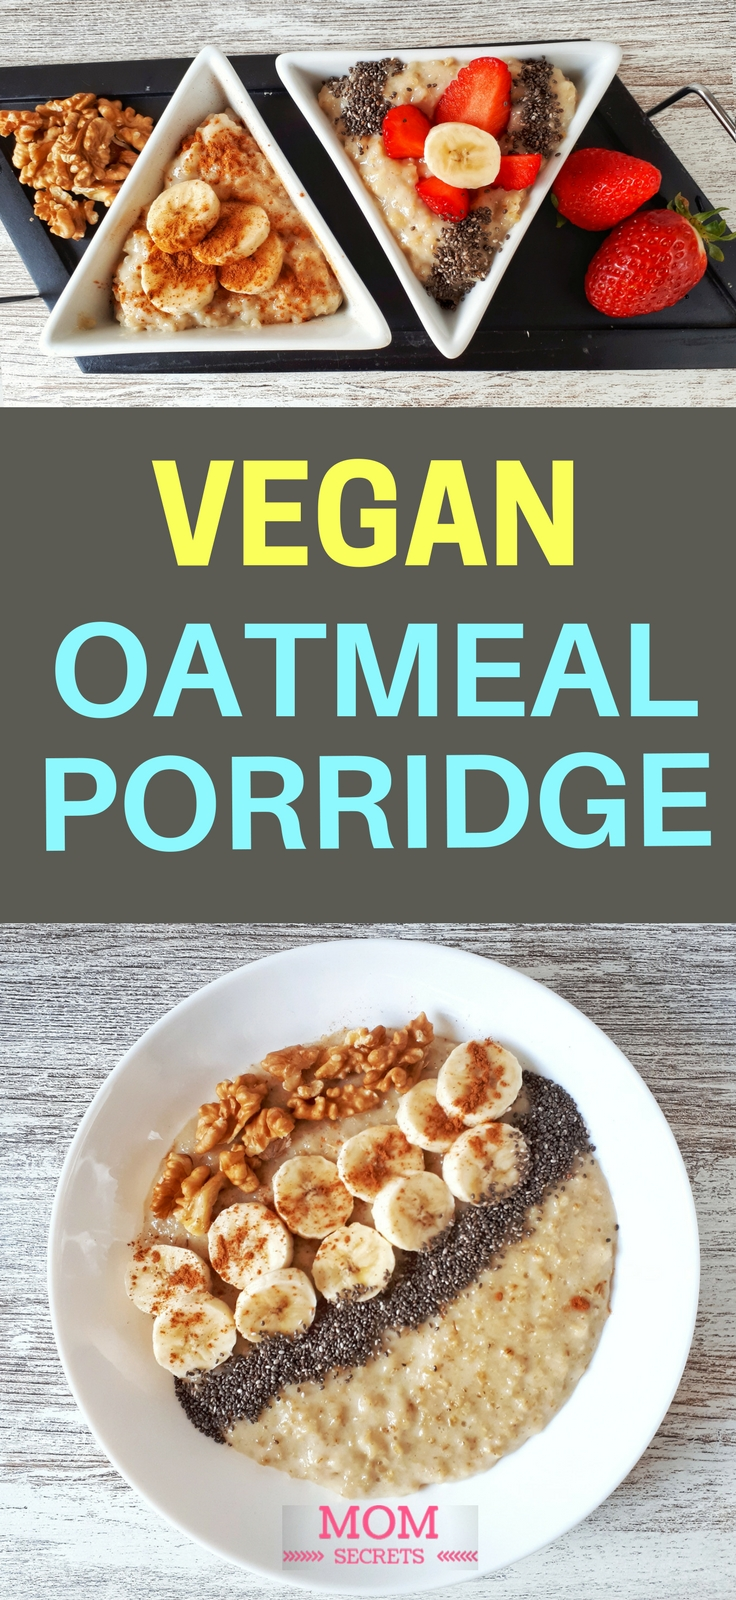 This creamy banana porridge is simply the best breakfast! It's an easy, quick and healthy recipe. Banana oatmeal porridge makes a brilliant vegan breakfast!